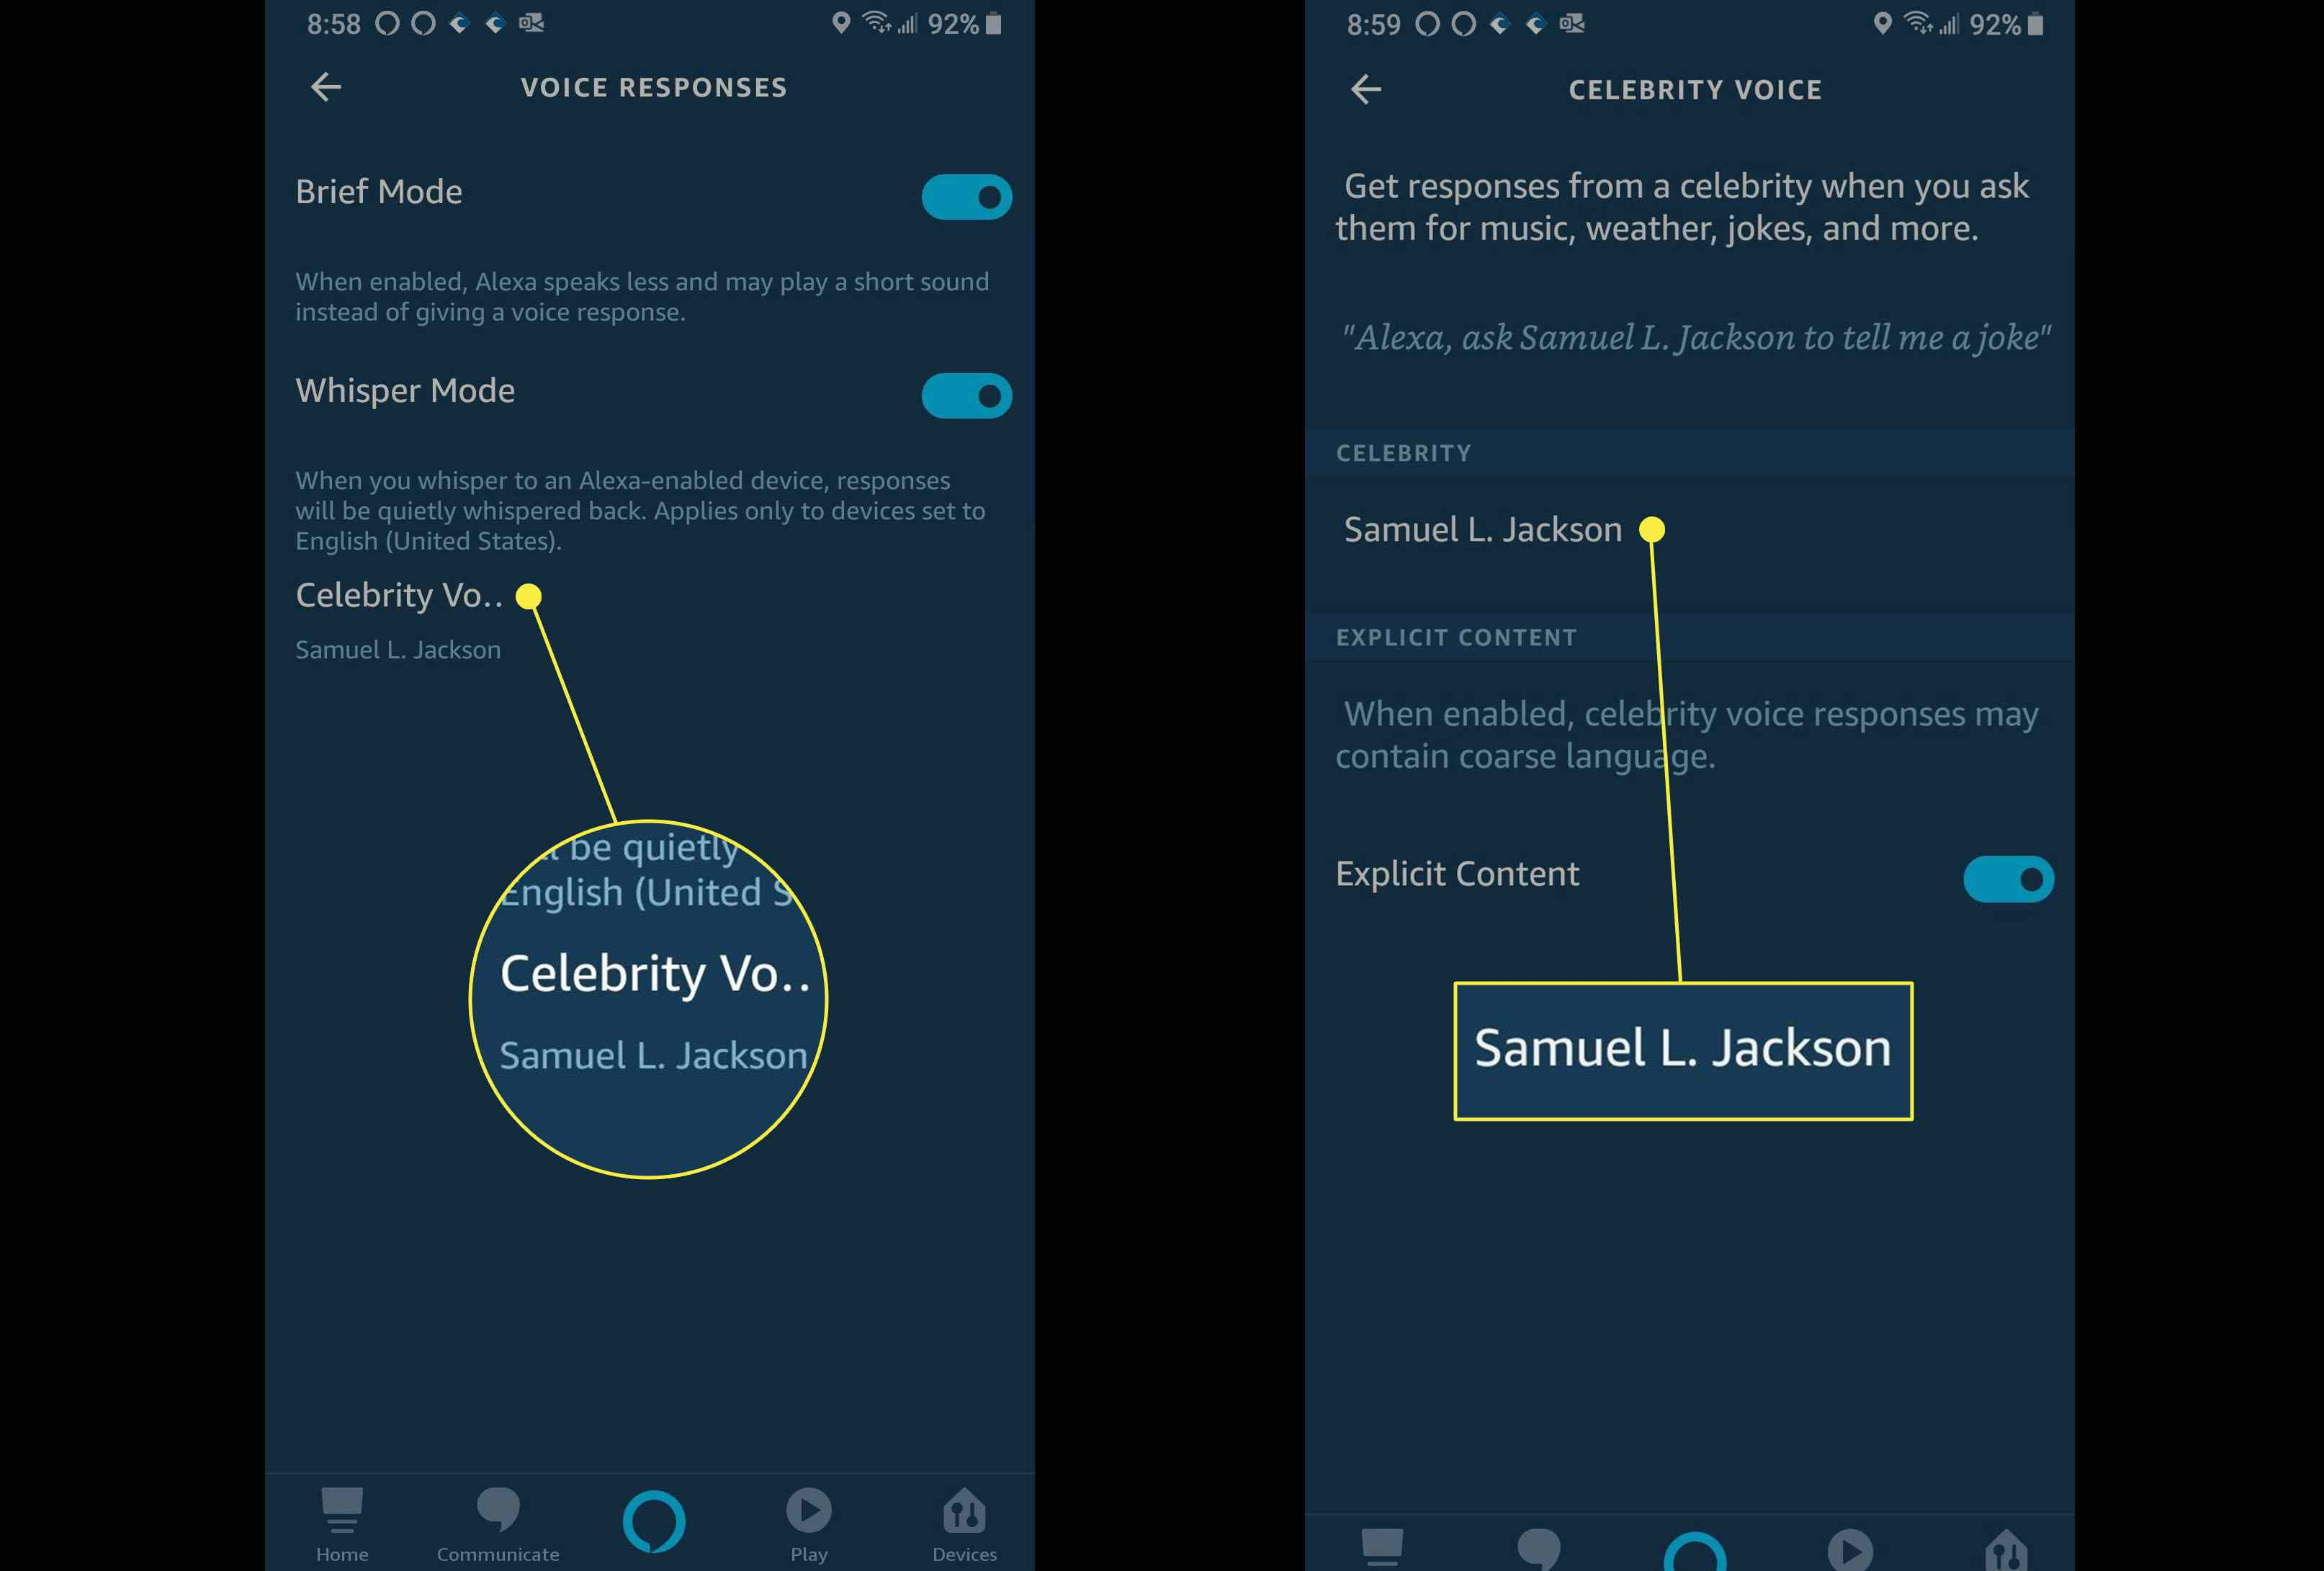 How to toggle off explicit content from Samuel L. Jackson on Amazon Alexa.